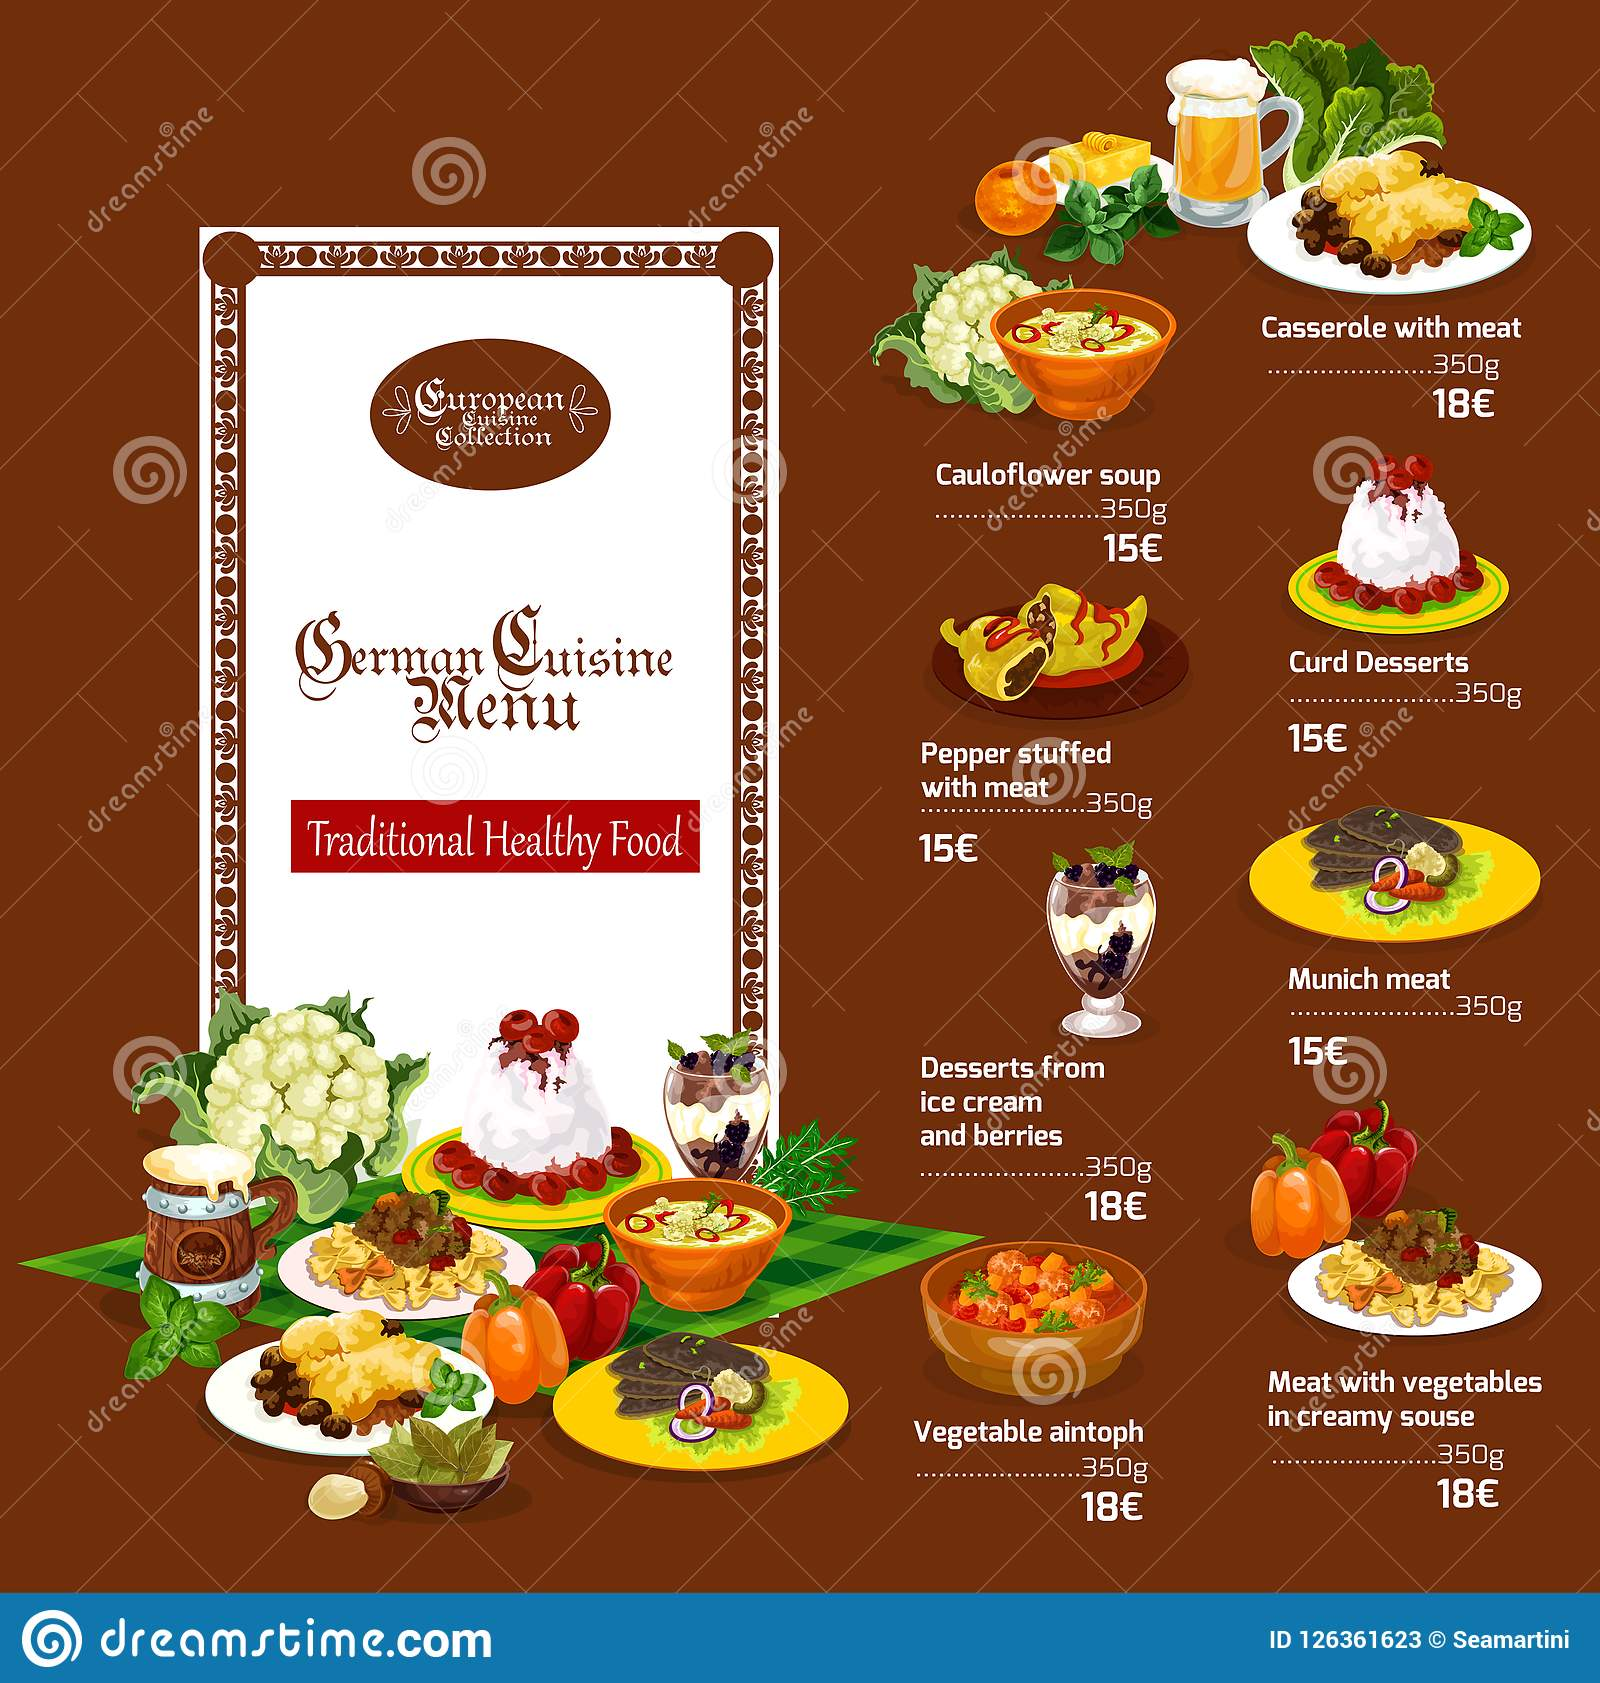 German Cuisine Menu With Restaurant Dishes Stock Vector